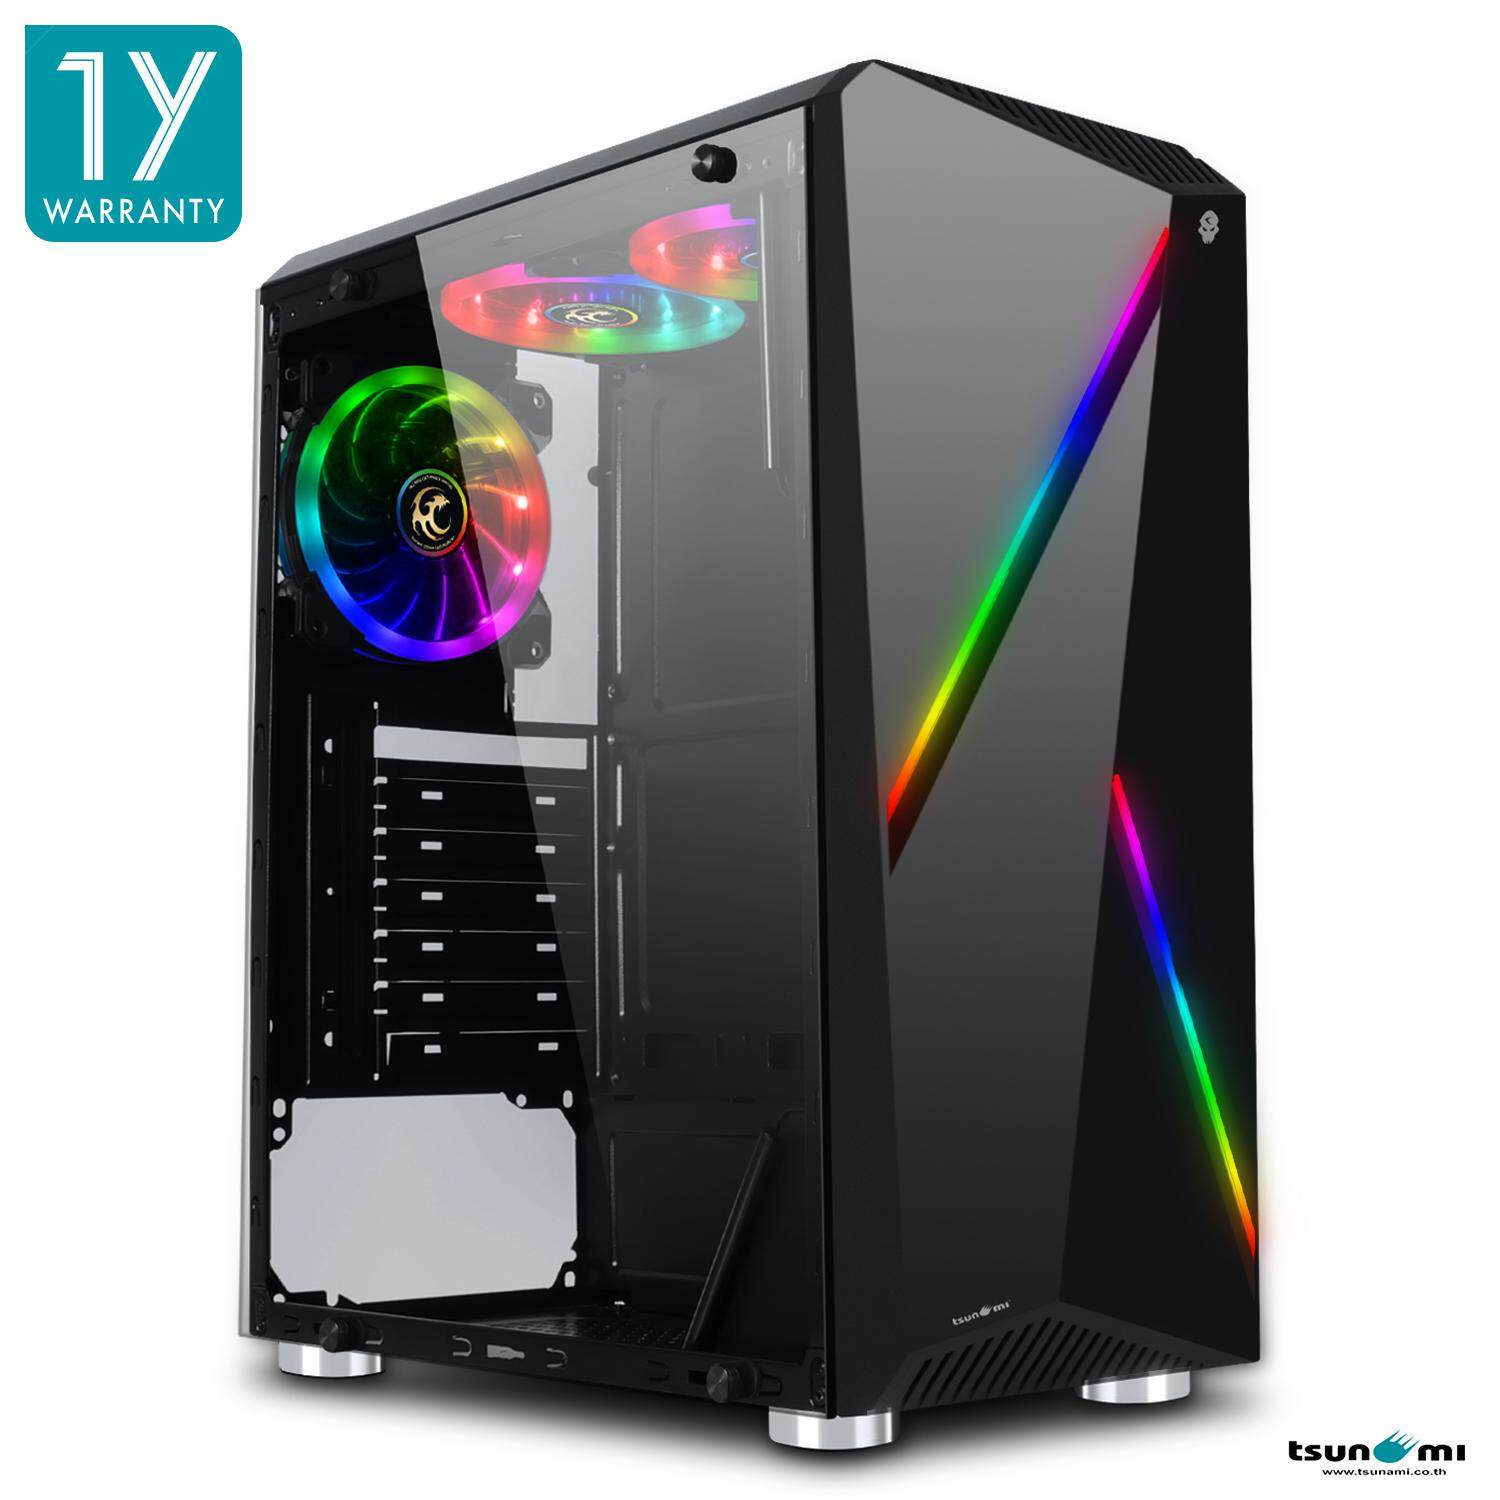 Tsunami Galaxy G8 Tempered Glass Atx Gaming Case By Fun Republic Co.,ltd..